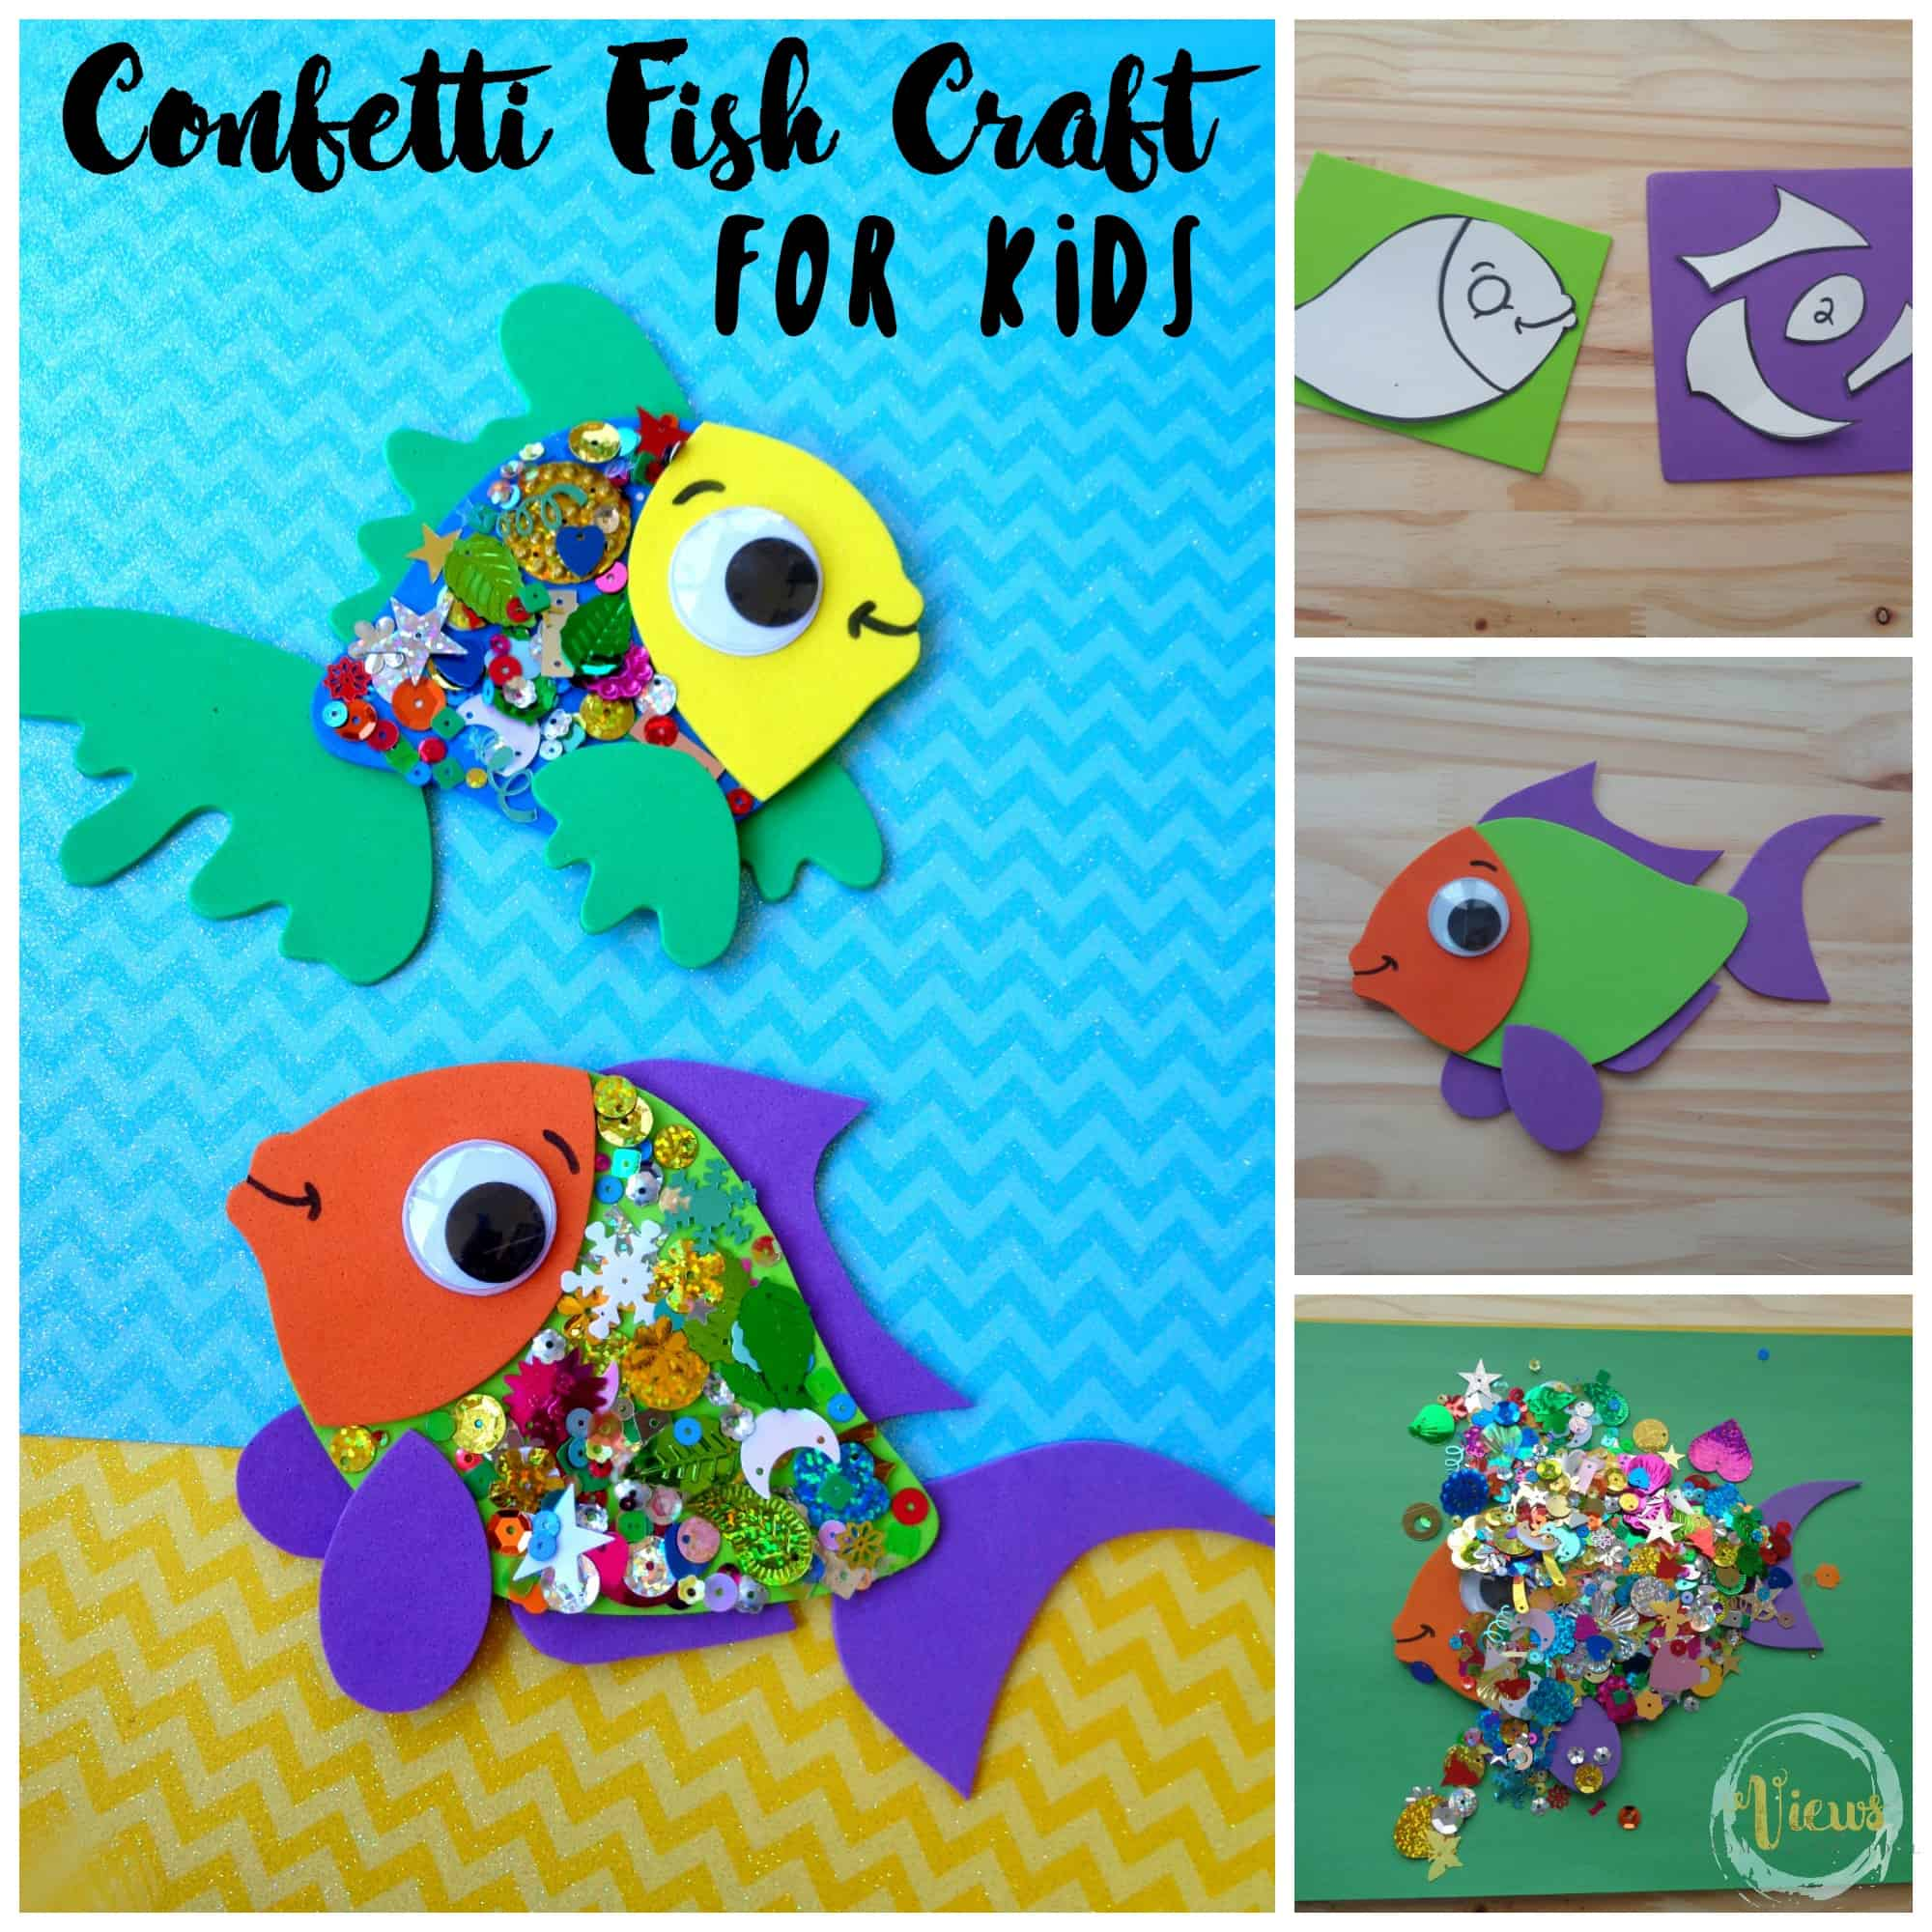 This confetti fish craft for kids is so cute. Perfect for an ocean theme or simply for pretend play. Includes modifications for varying ages.